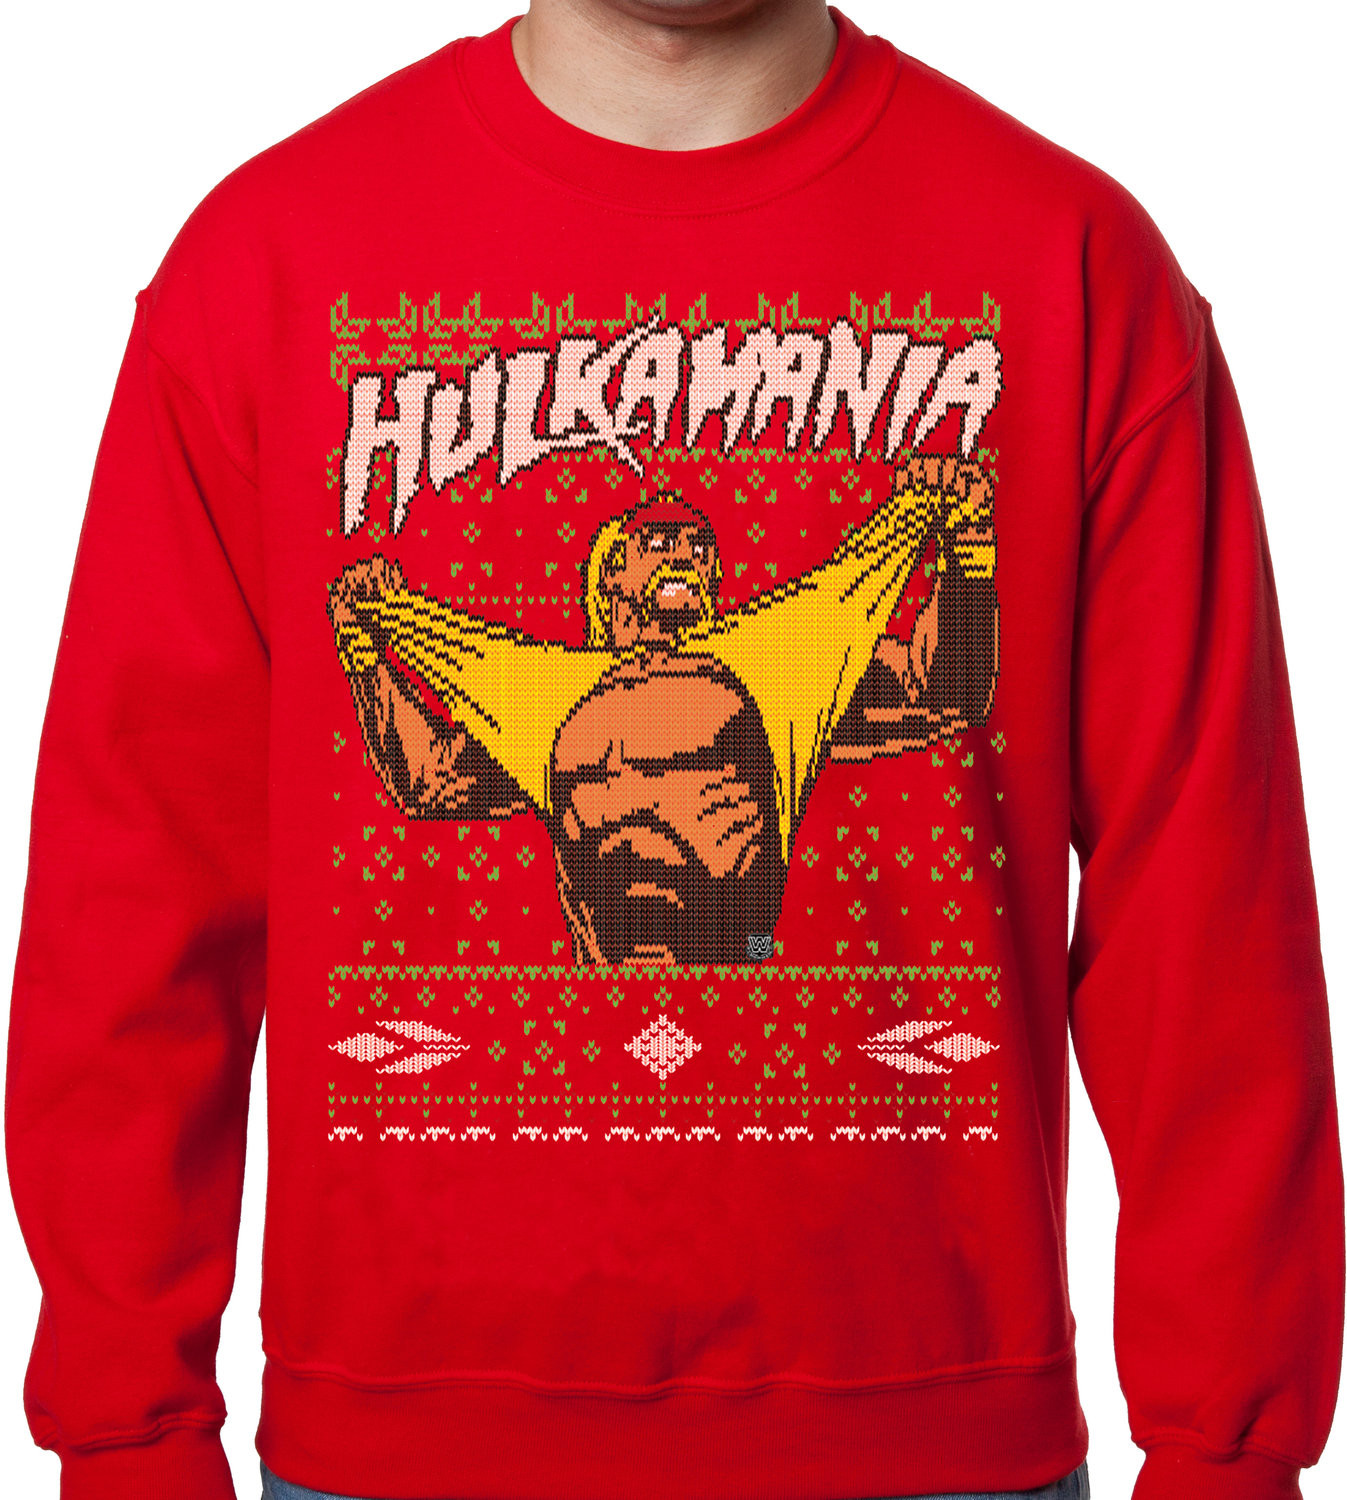 Someone Bought This: You can make a Hulk Hogan Ugly Christmas ...